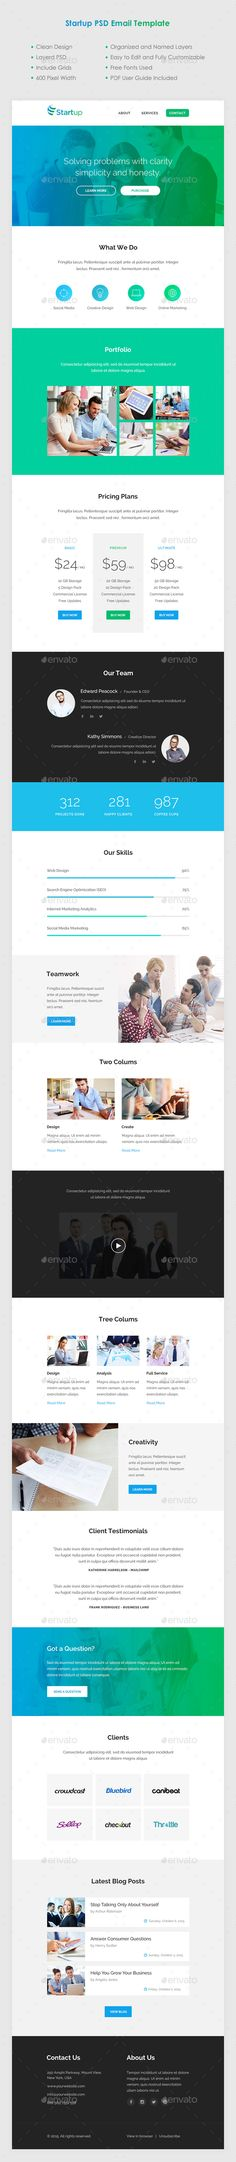 Asgar - Multipurpose Email Template Font logo and Logos - business email template